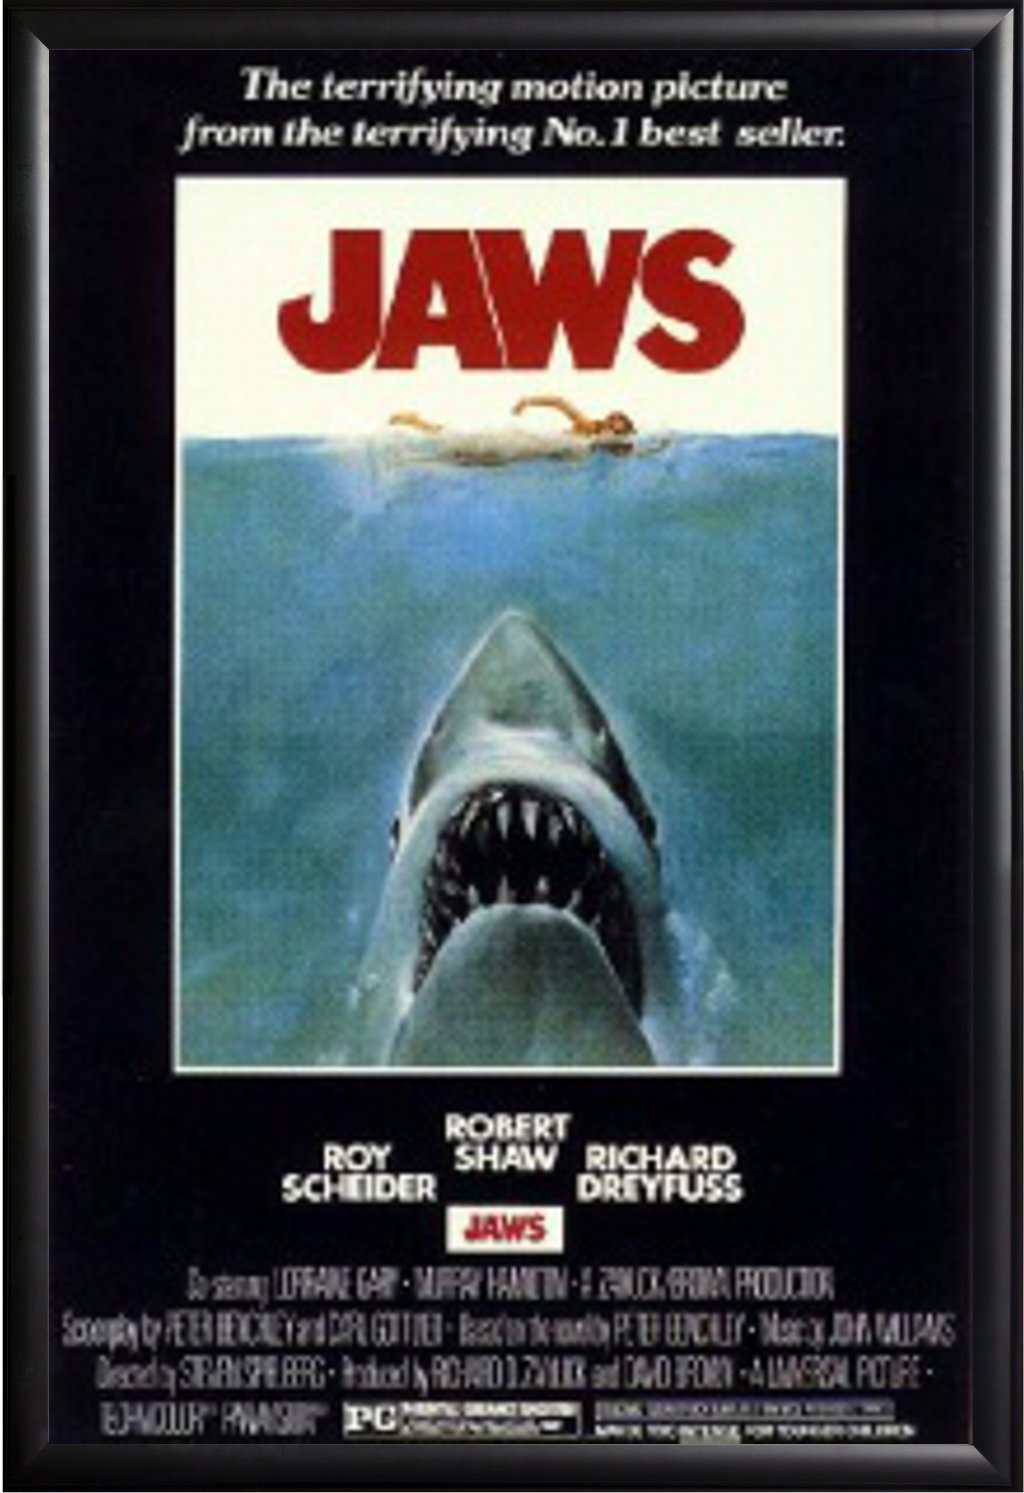 Framed Shark and Swimmer - Jaws 1975 Movie 24x36 Poster in Matte Black Finish Wood Frame